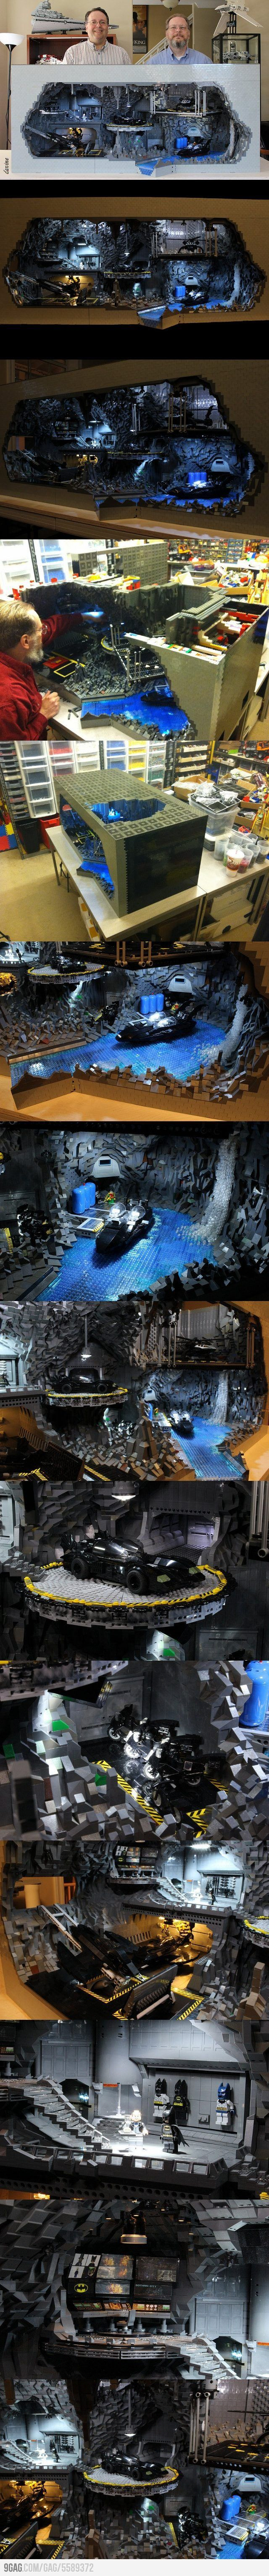 Batcave made out of 20,000 LEGO pieces! these guys have to much time on their hands!!!!